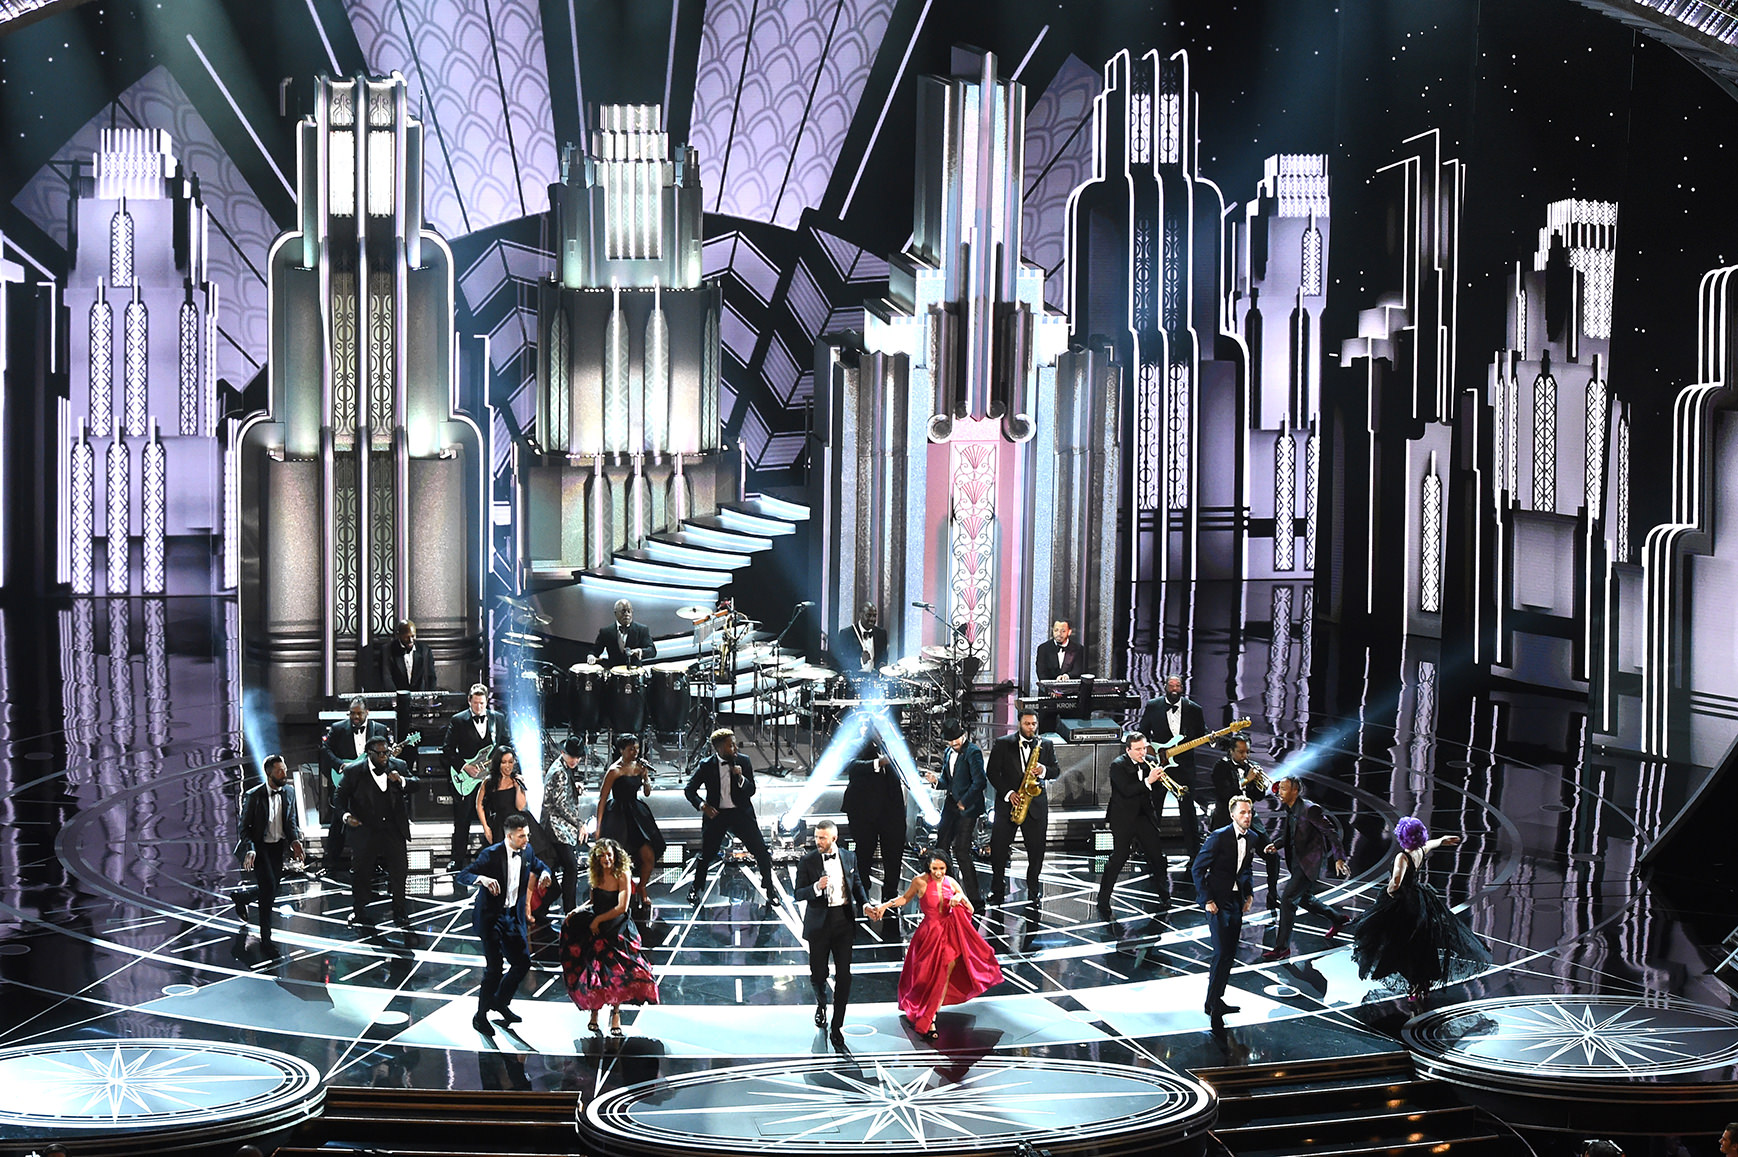 89th OSCARS - JUSTIN TIMBERLAKE OPENING PERFORMANCE